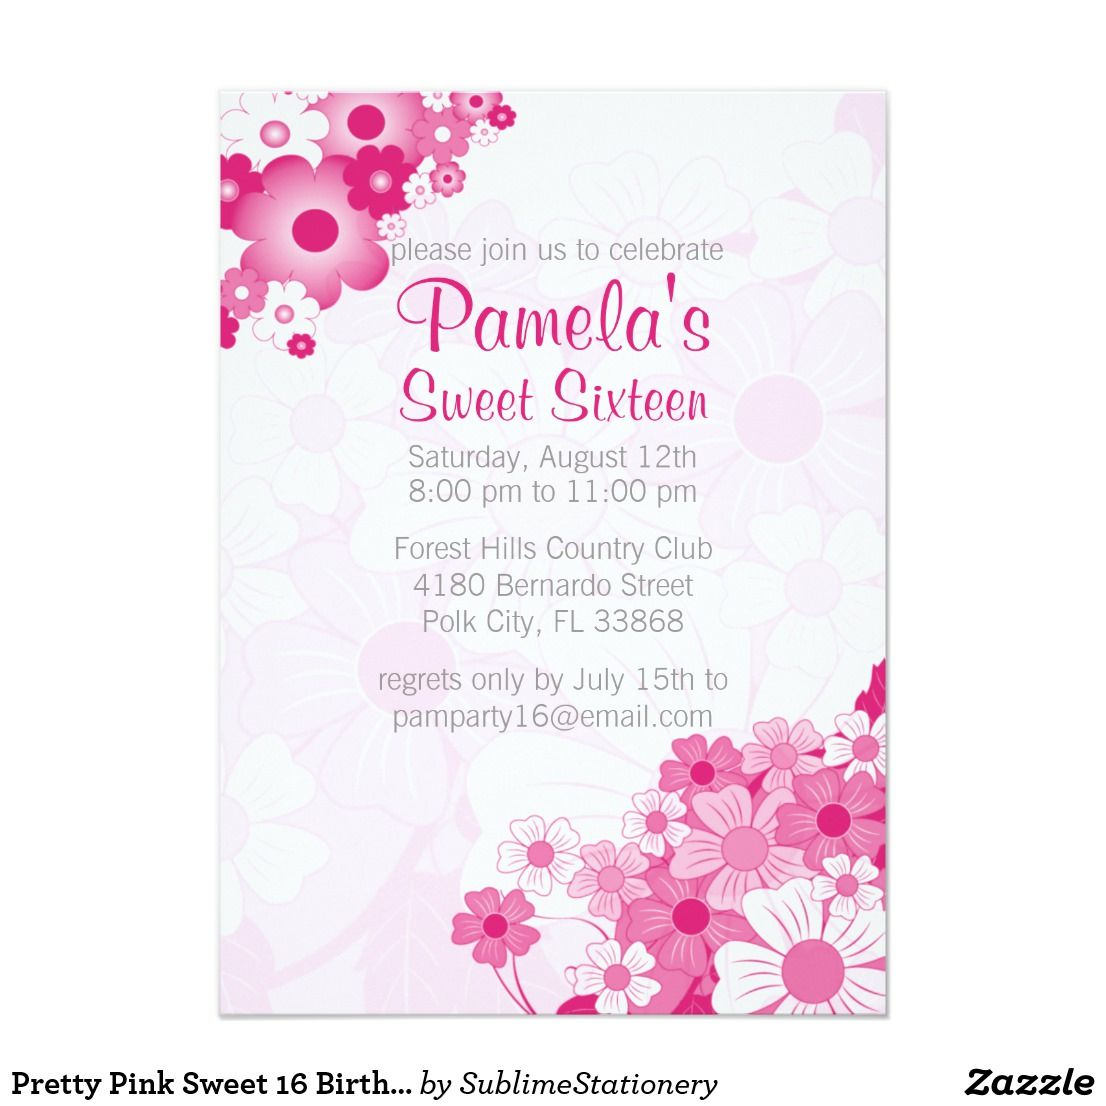 Pretty Pink Sweet 16 Birthday Party Invitations | Pink sweet 16 ...